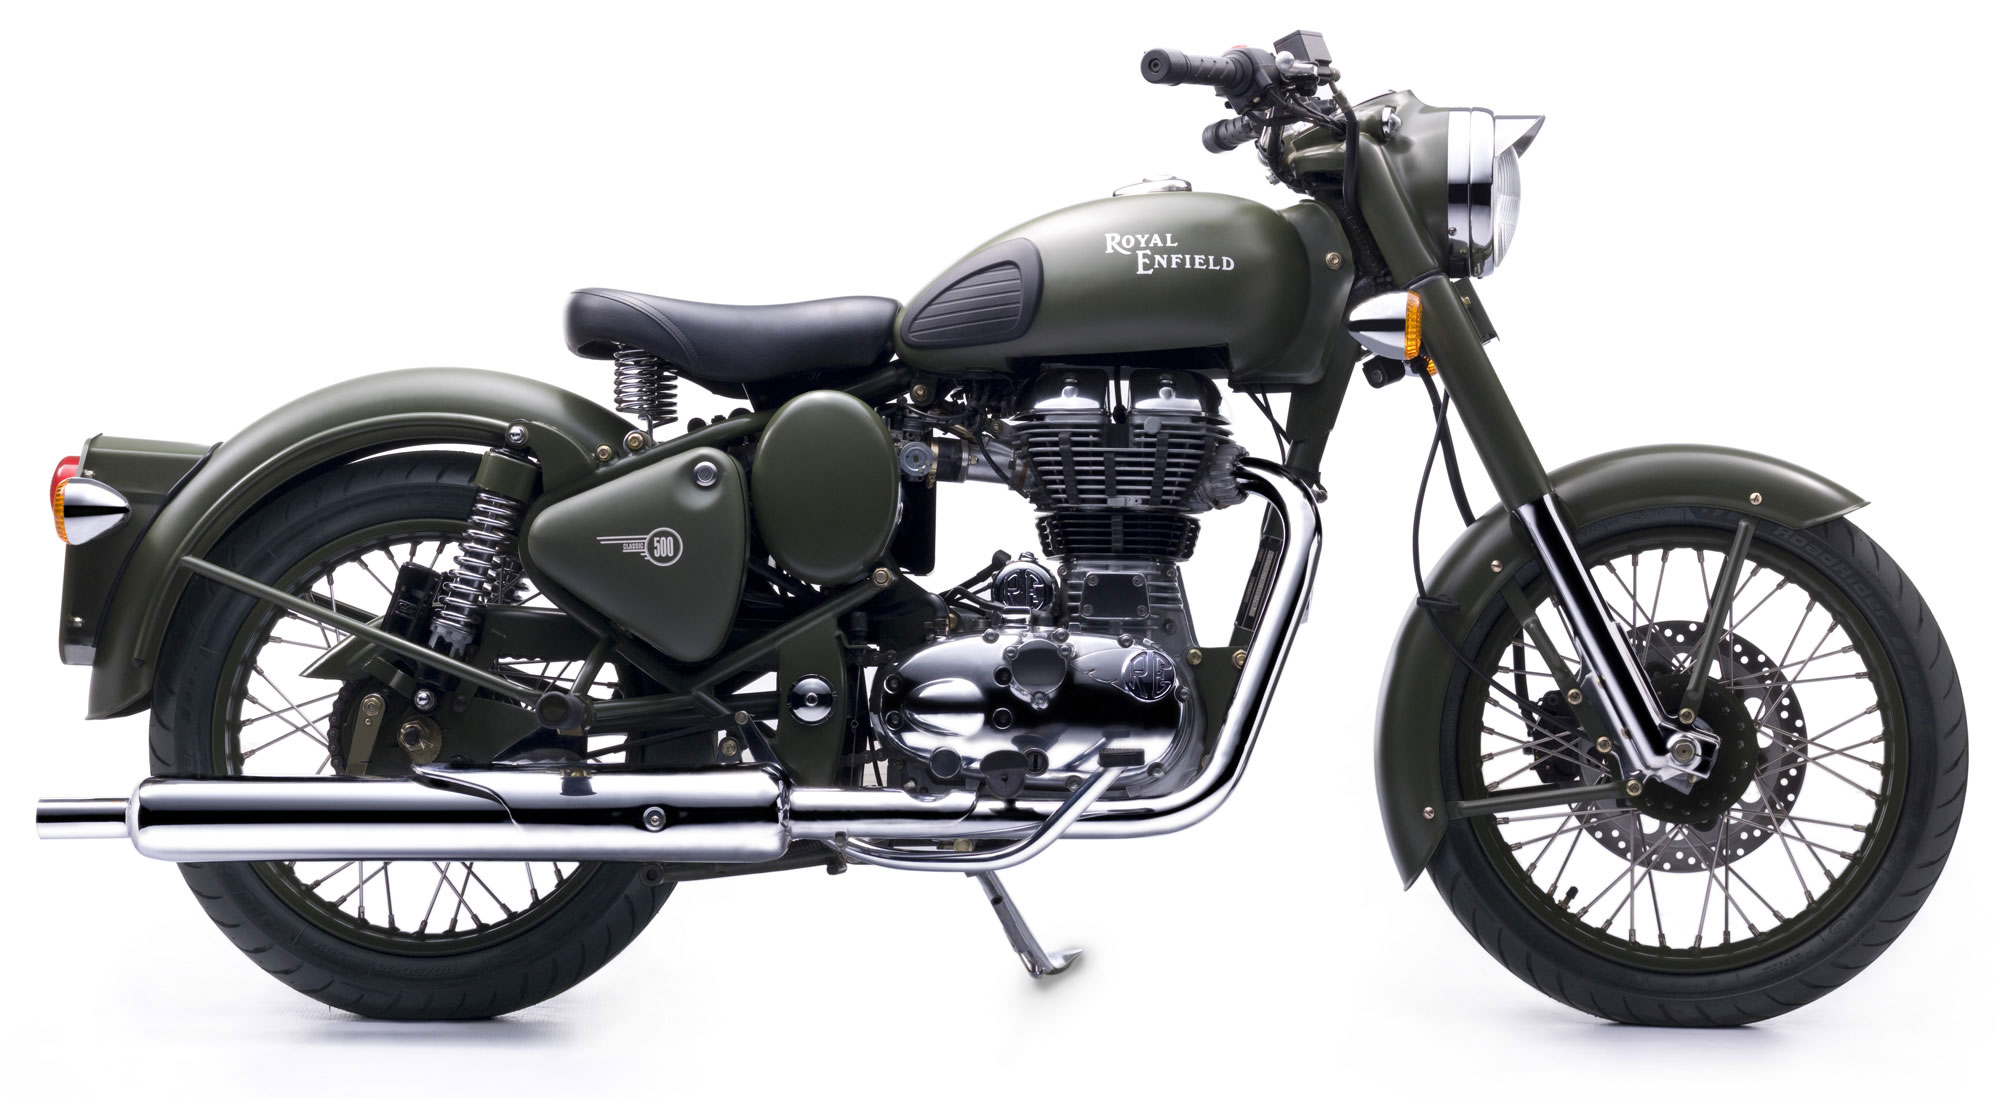 Royal Enfield Bullet 350 Army 1989 images #122464